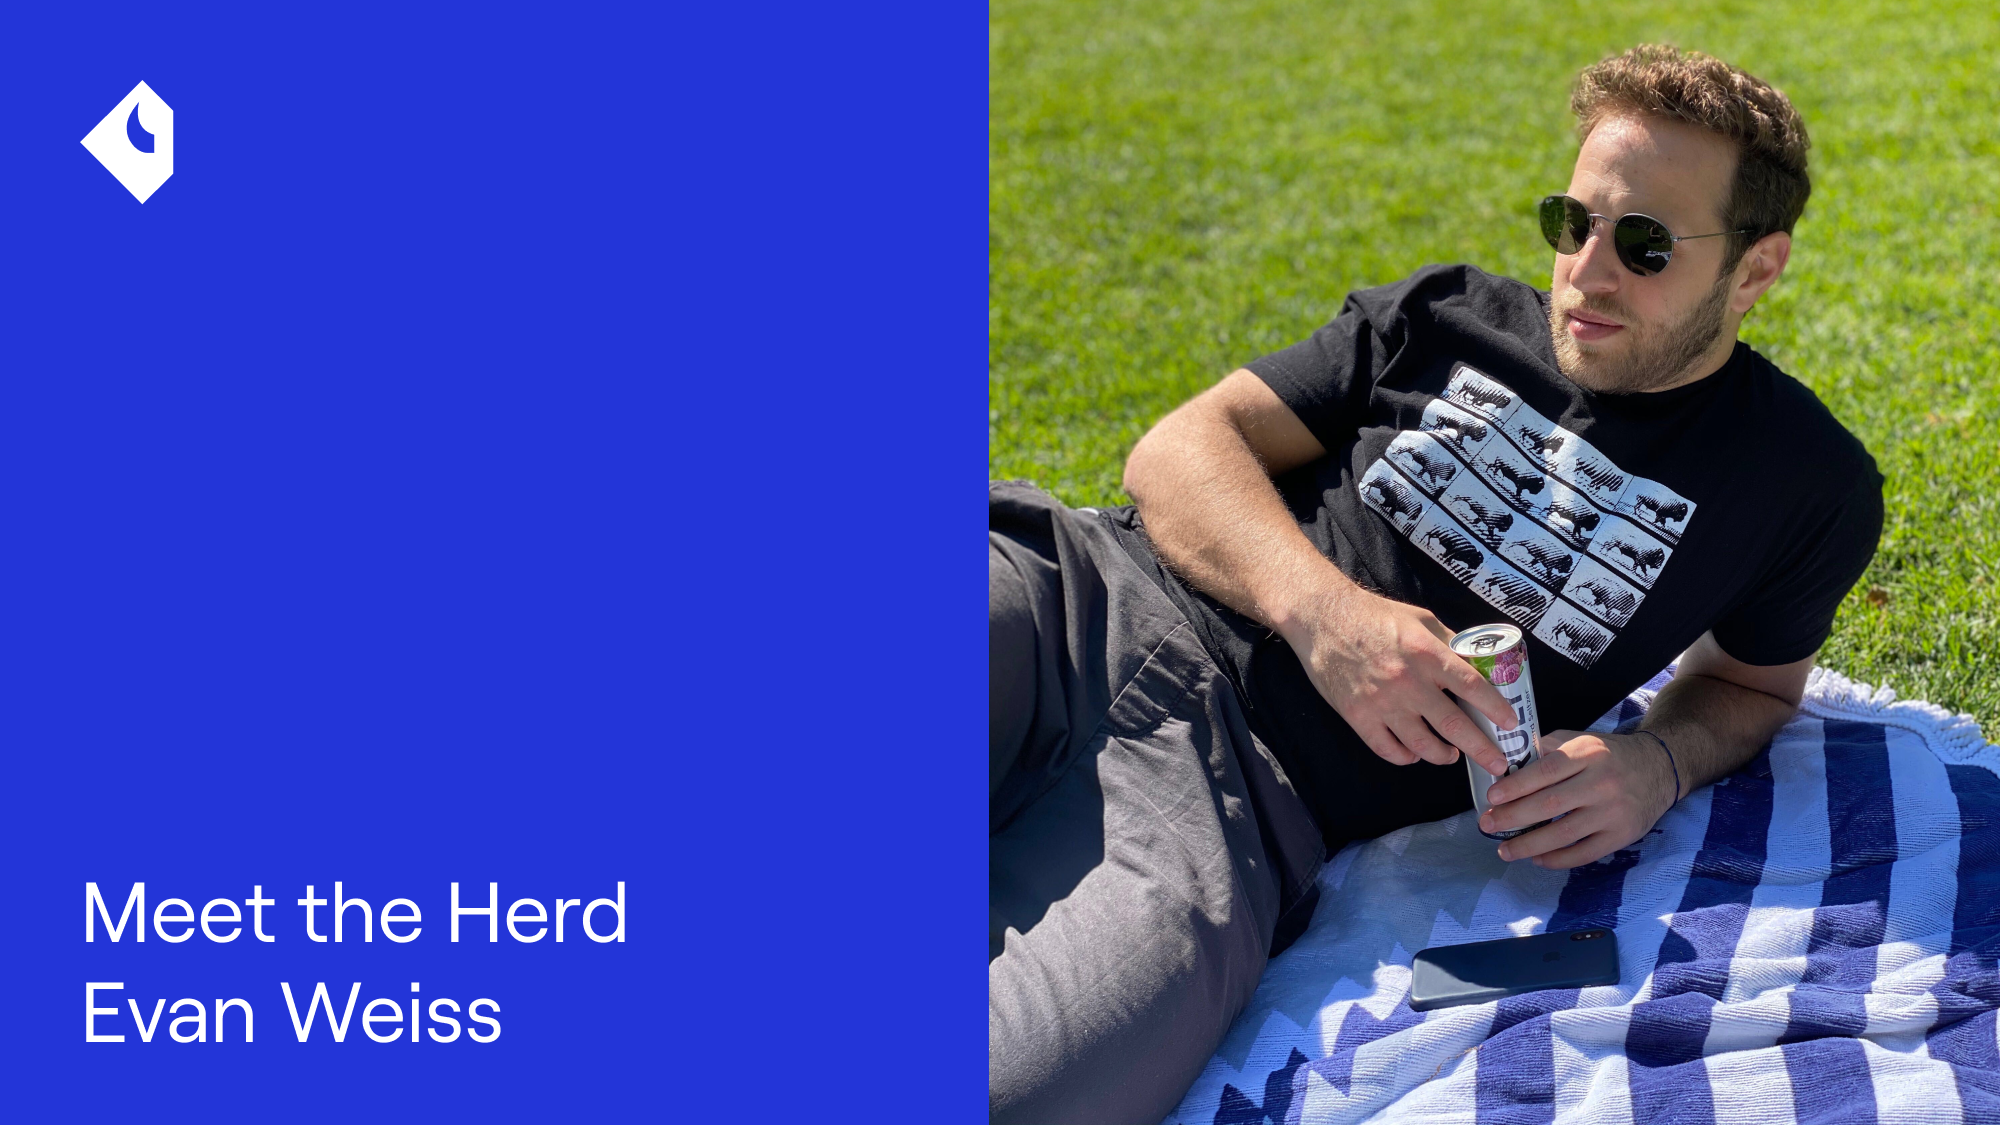 Meet the Herd: Head of Business Operations Evan Weiss